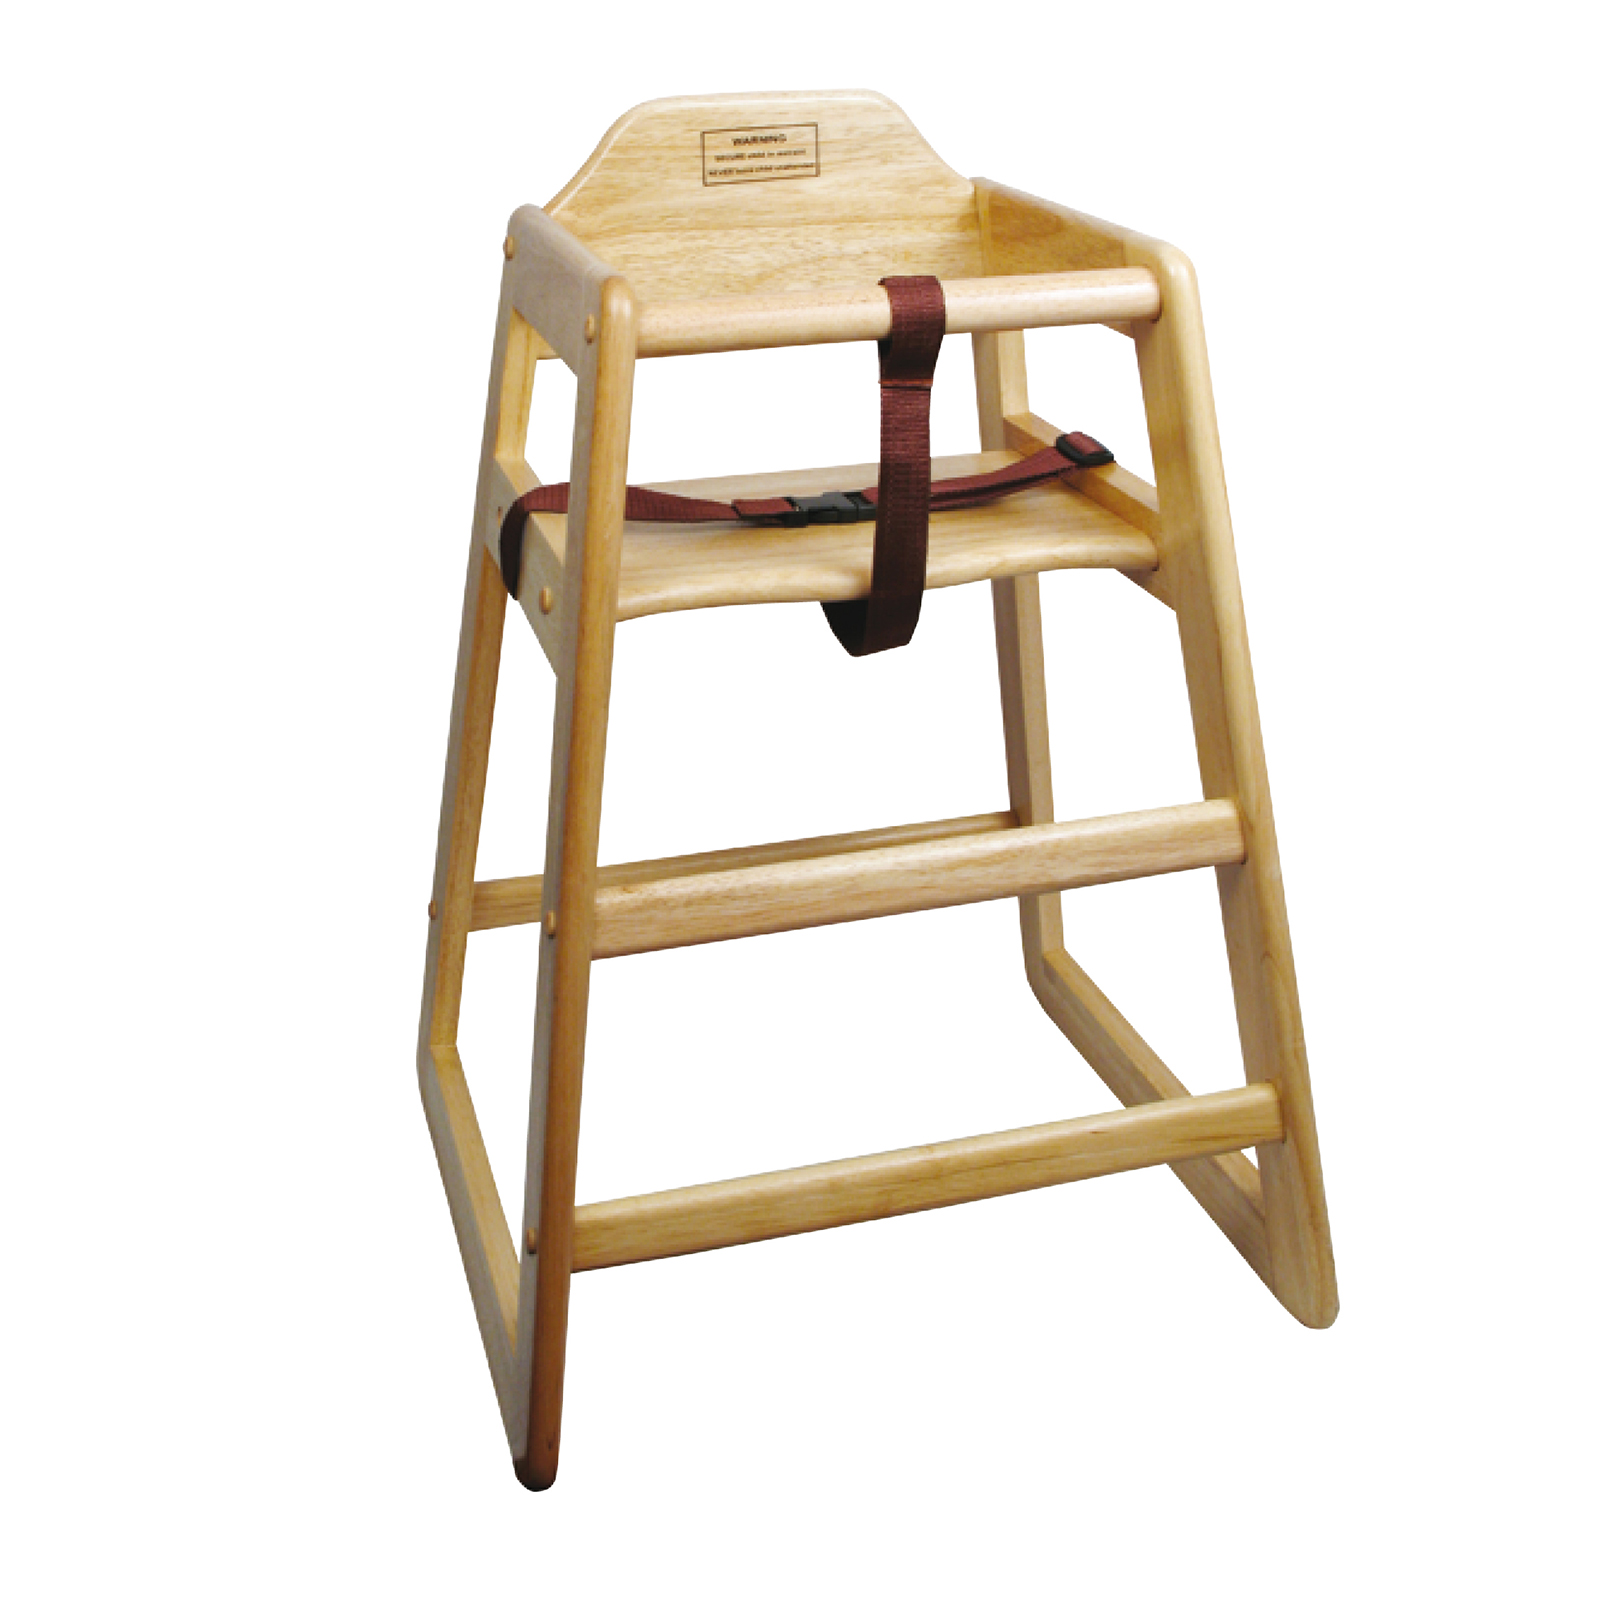 Winco CHH-101A high chair, wood